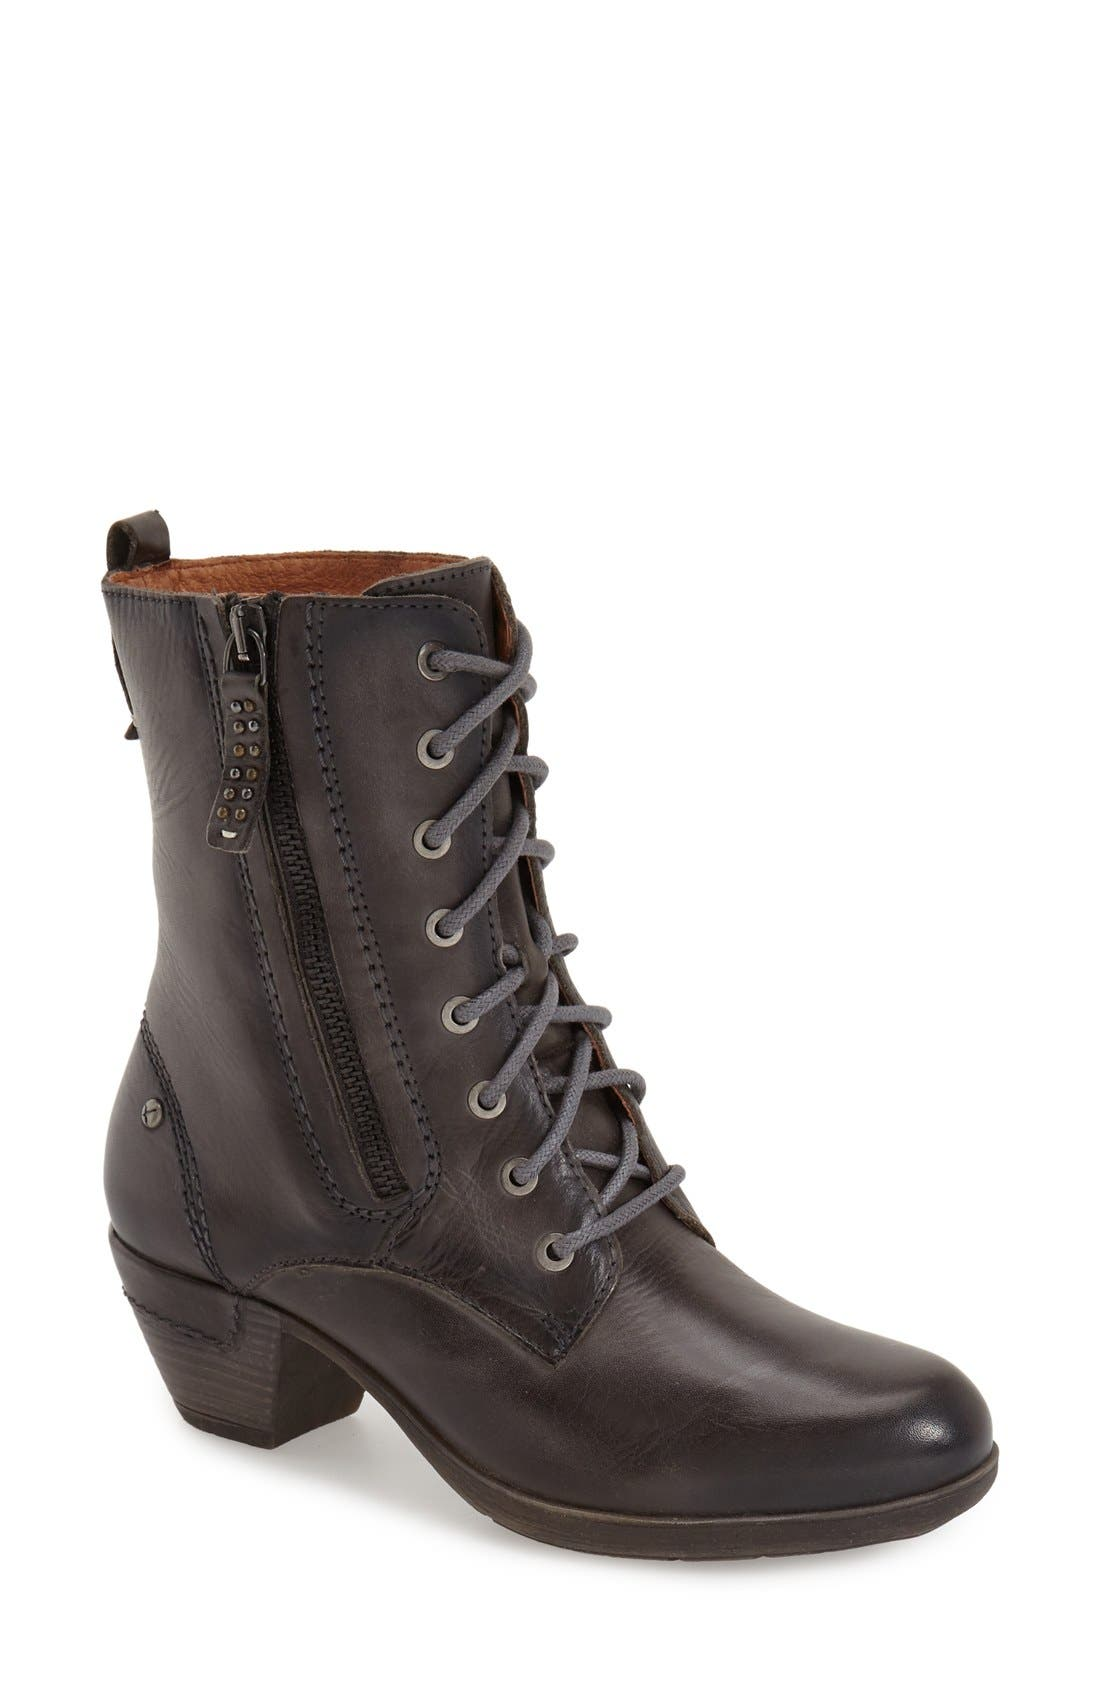 'Rotterdam' Lace-Up Boot,                         Main,                         color, Lead Leather